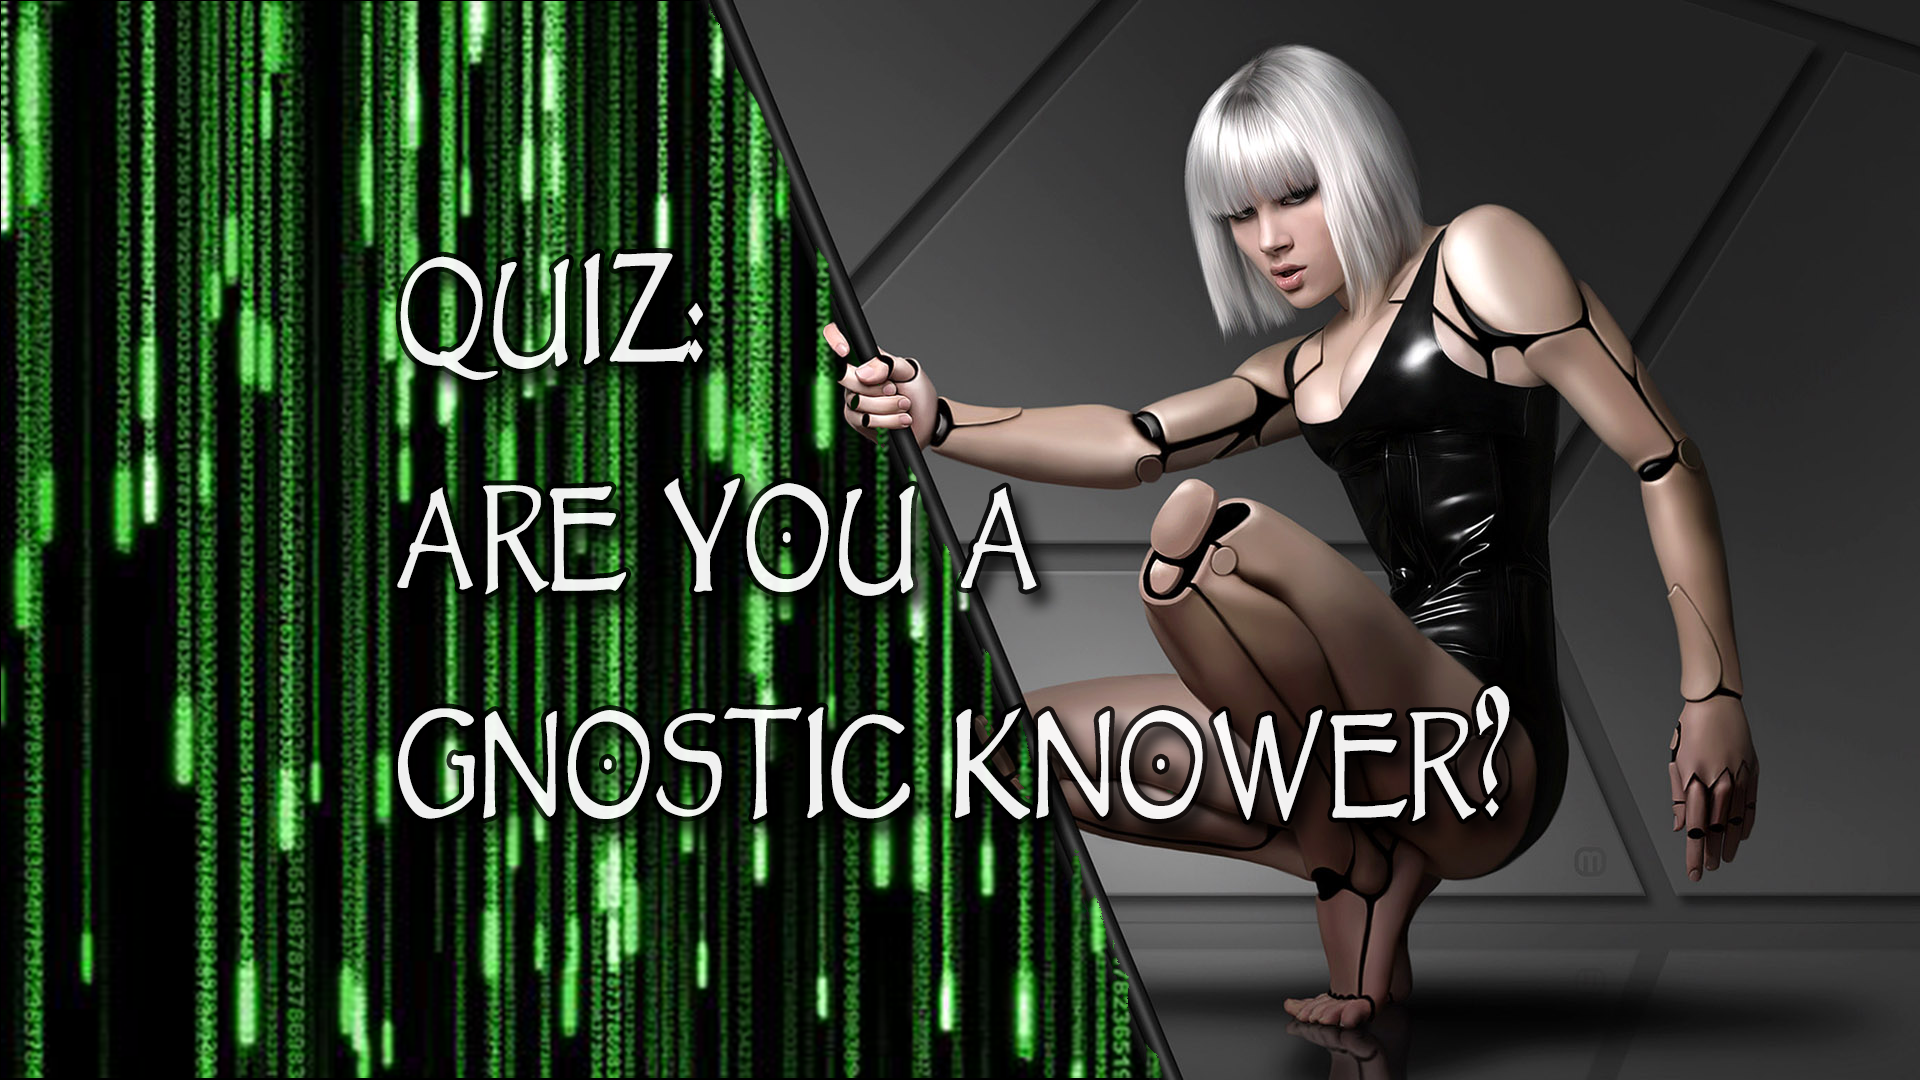 Quiz: Are You A Gnostic Knower?